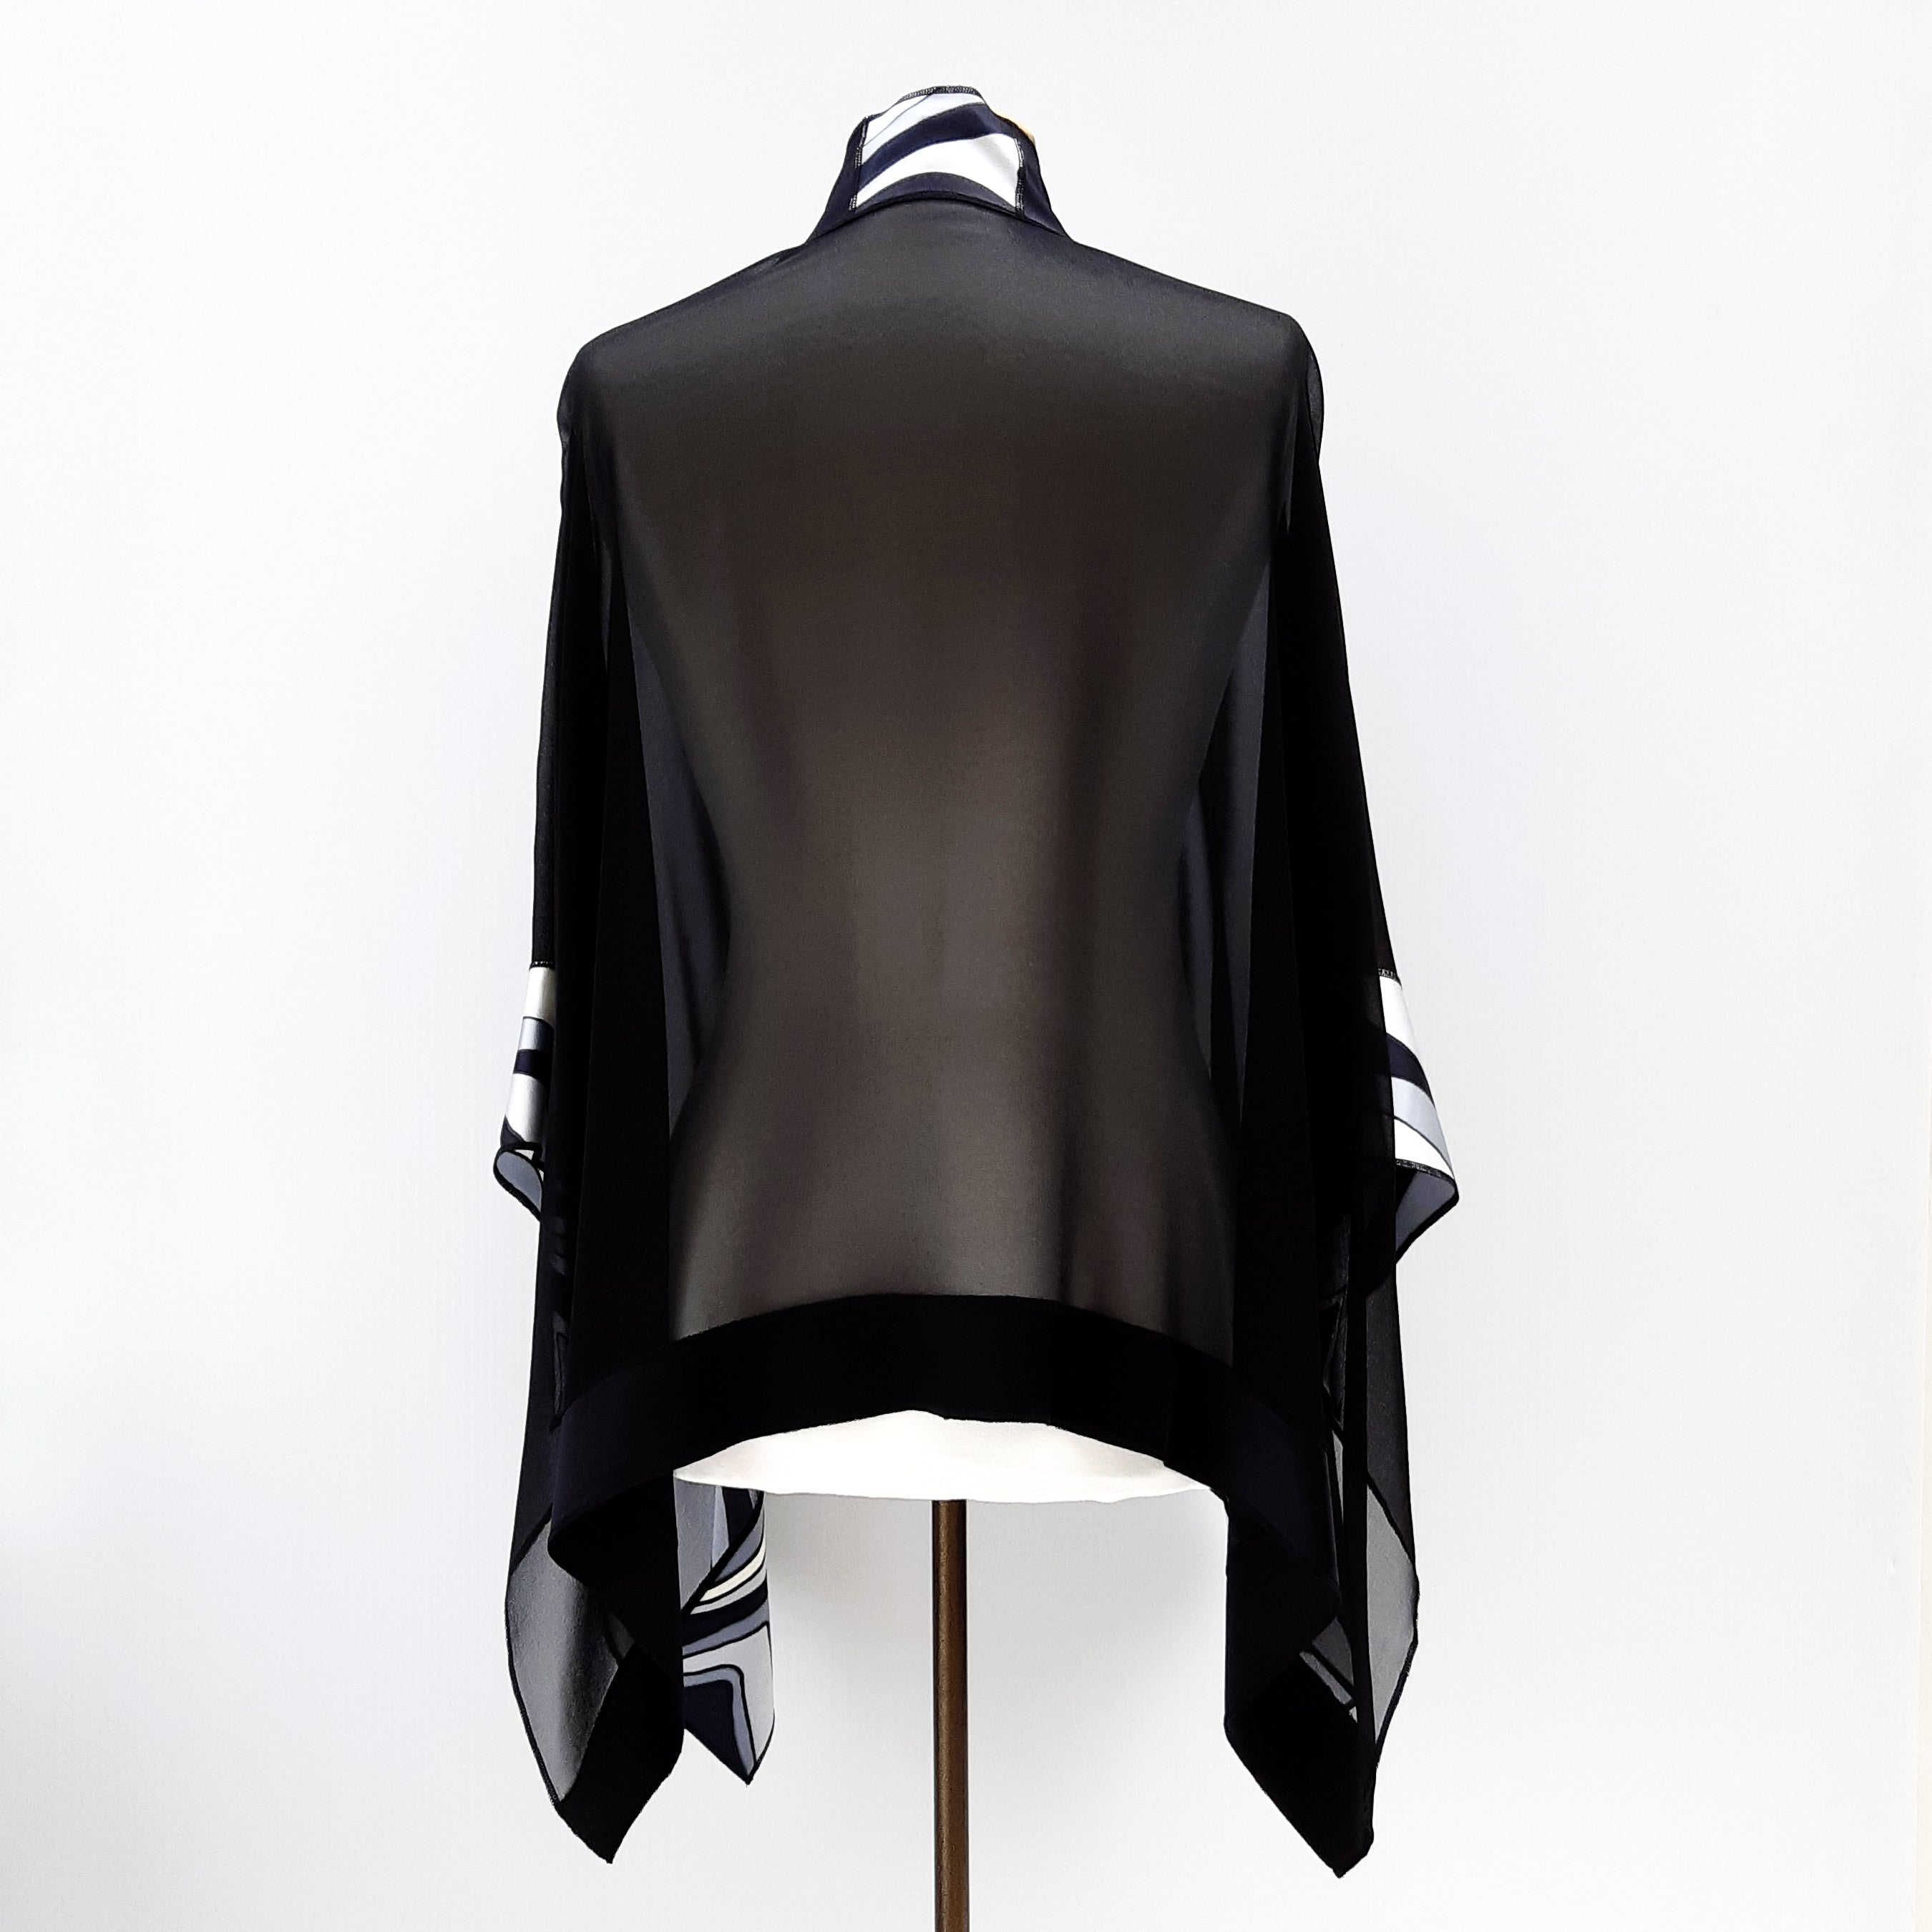 Painted silk shawl sheer black